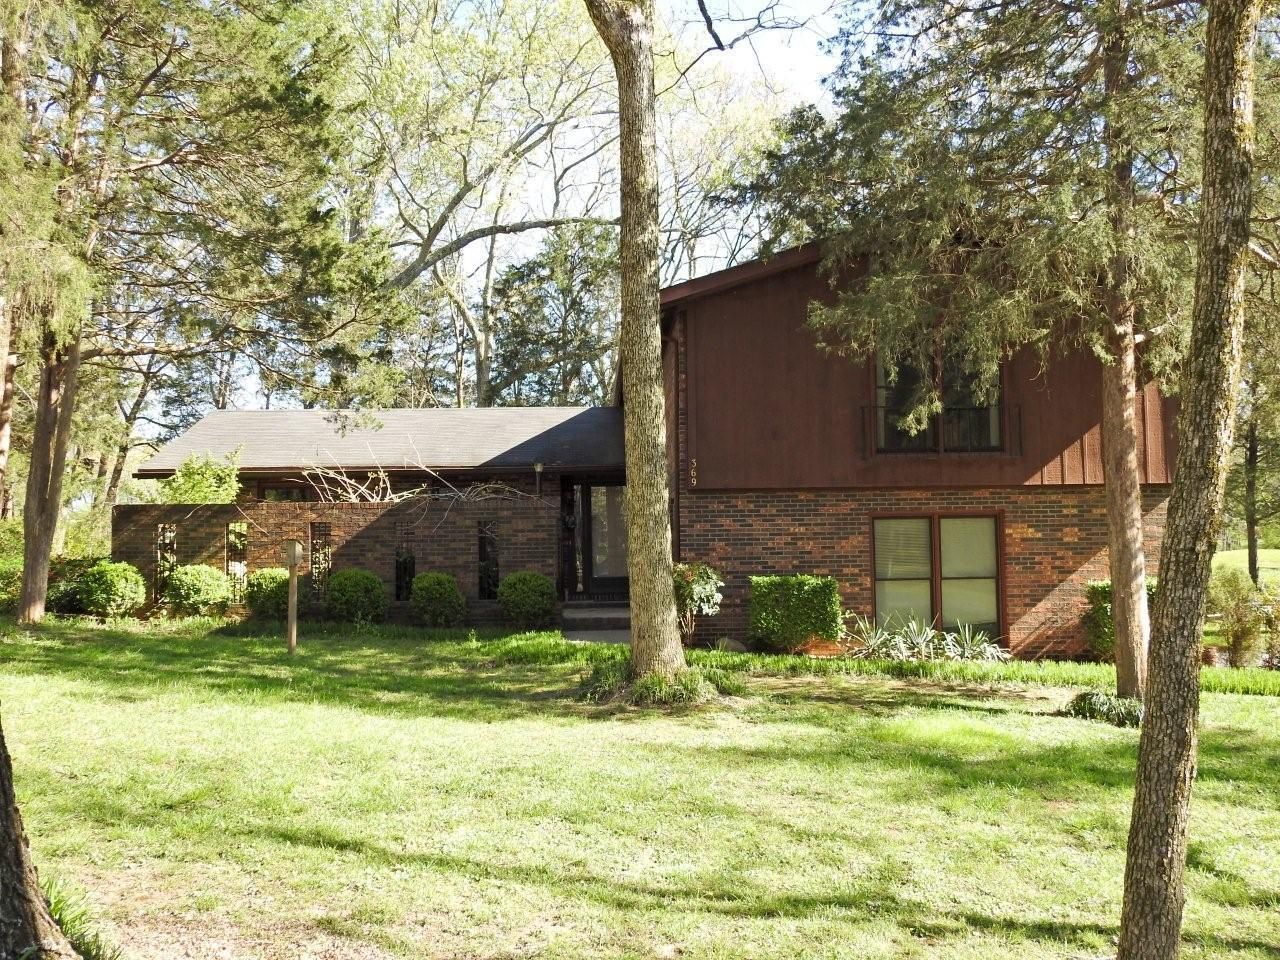 369 Riverbend Country Club Rd, Shelbyville, TN 37160